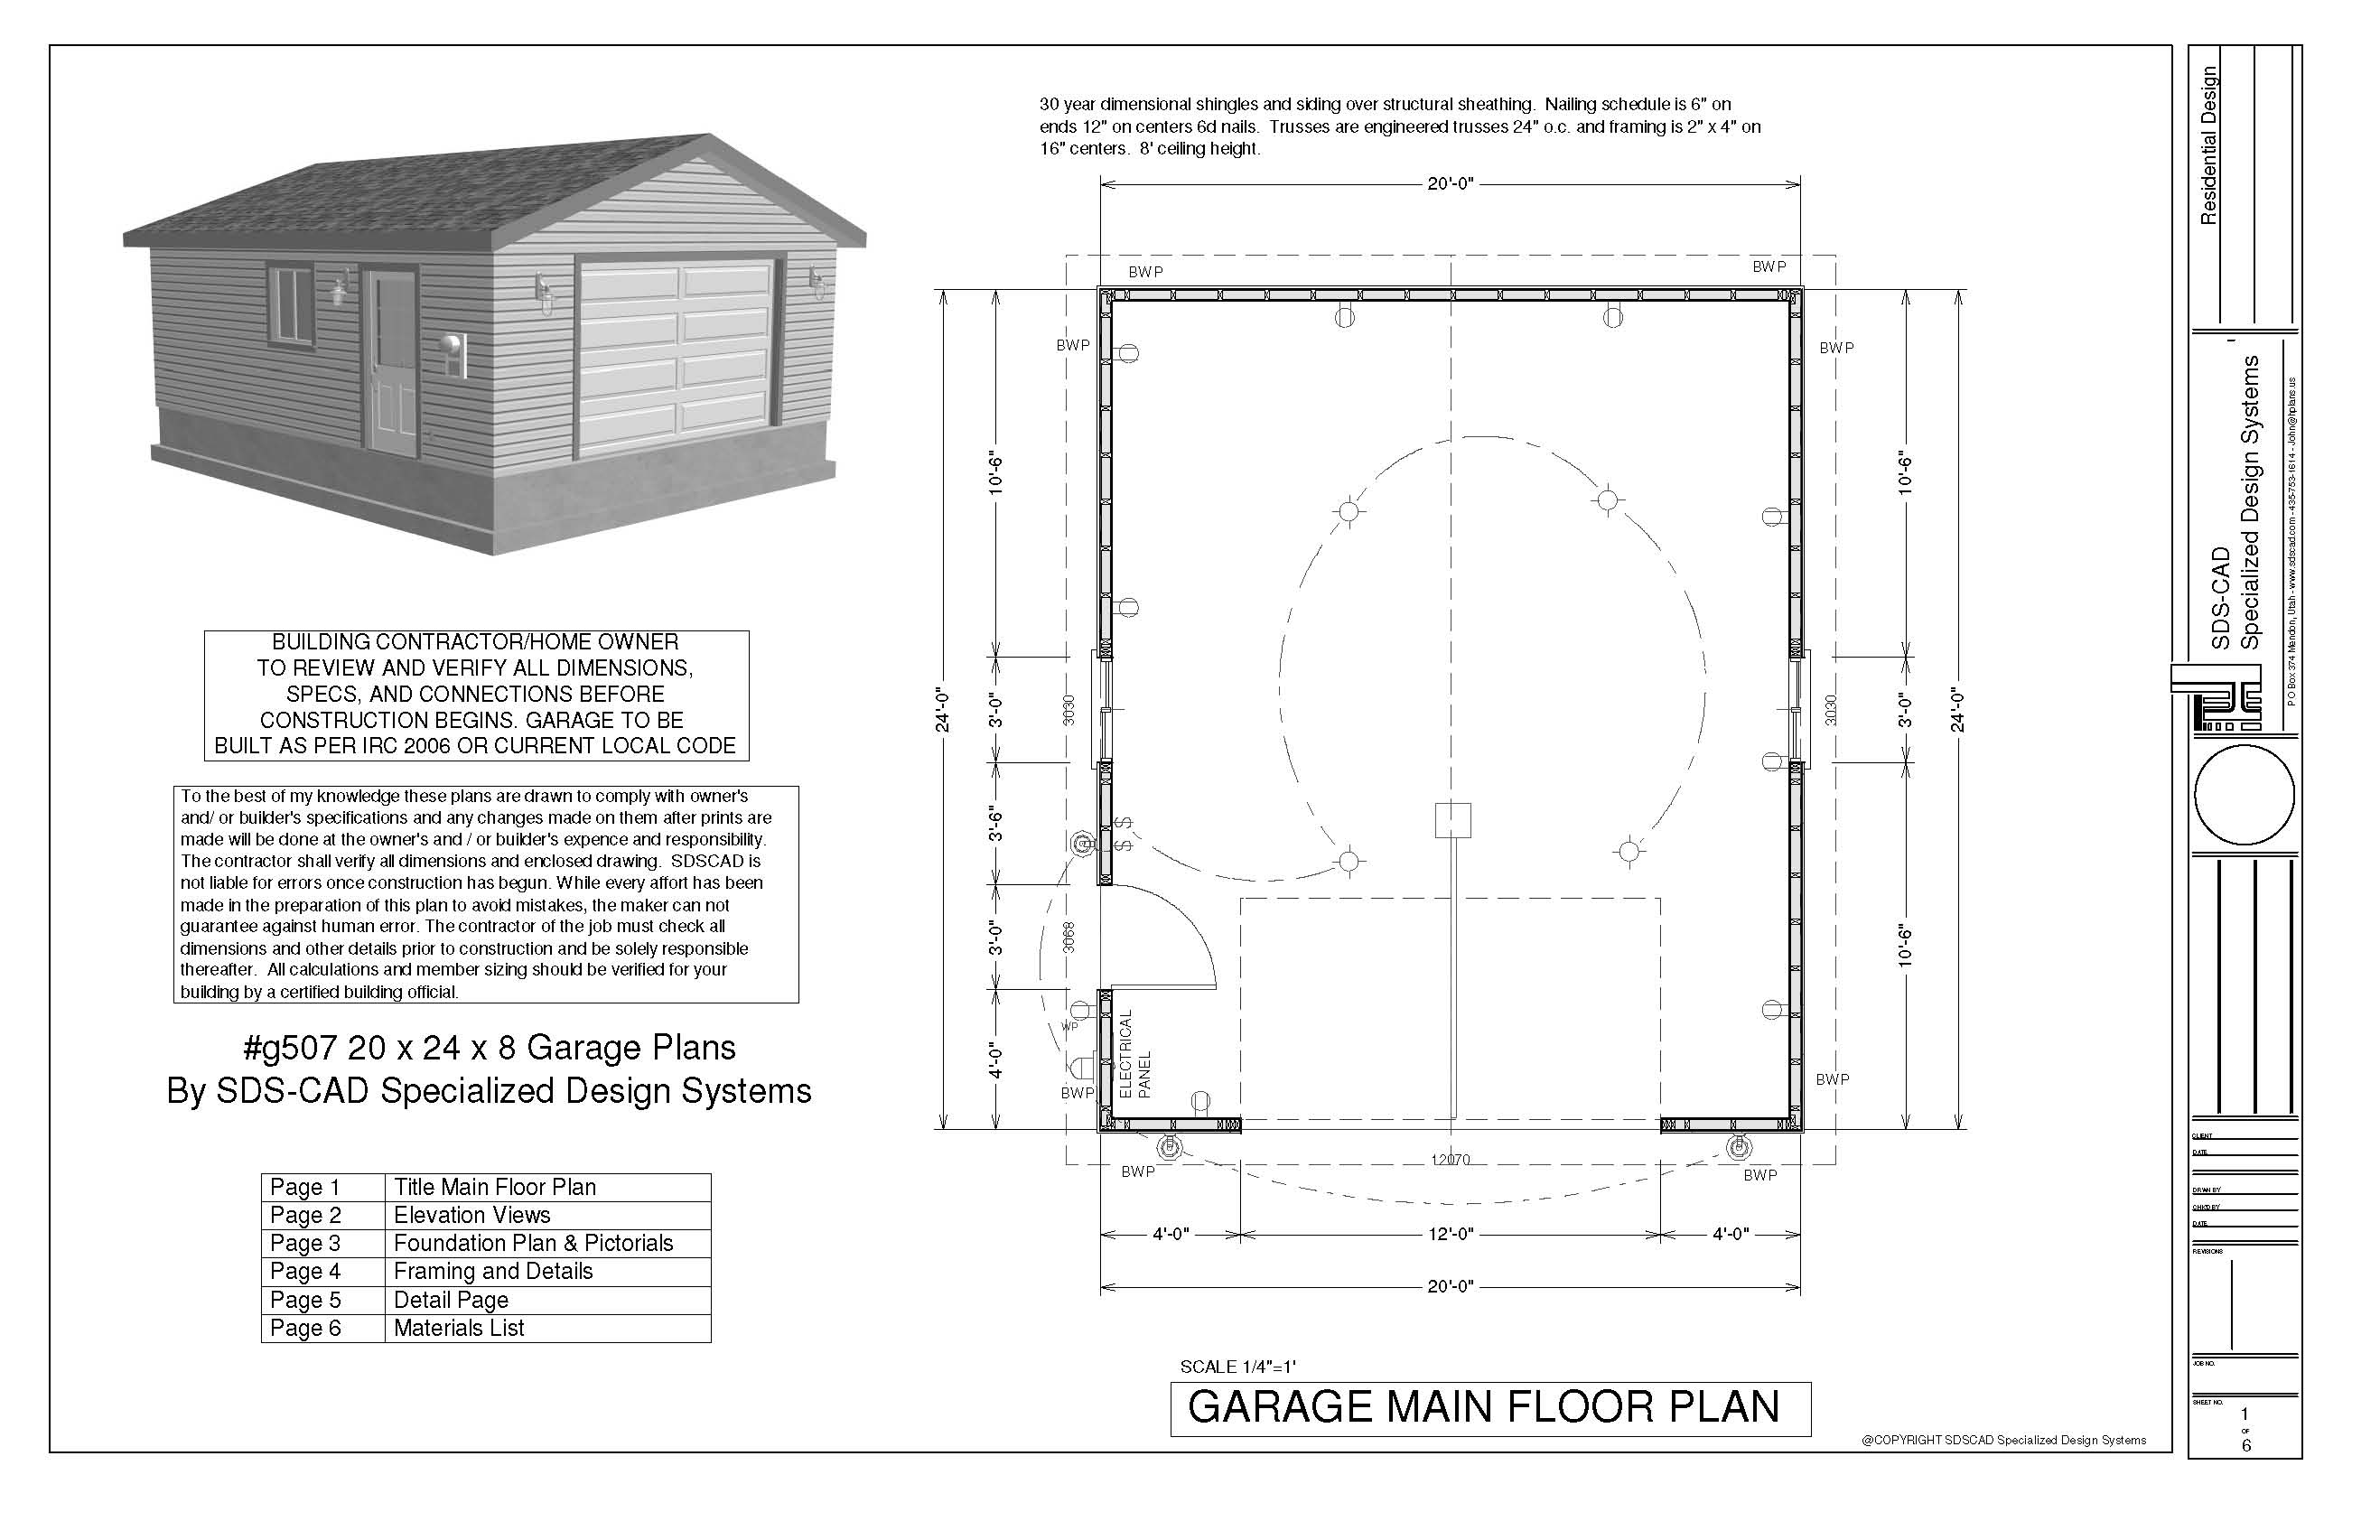 20 x 24 garage plans sds plans for Free garage plans online